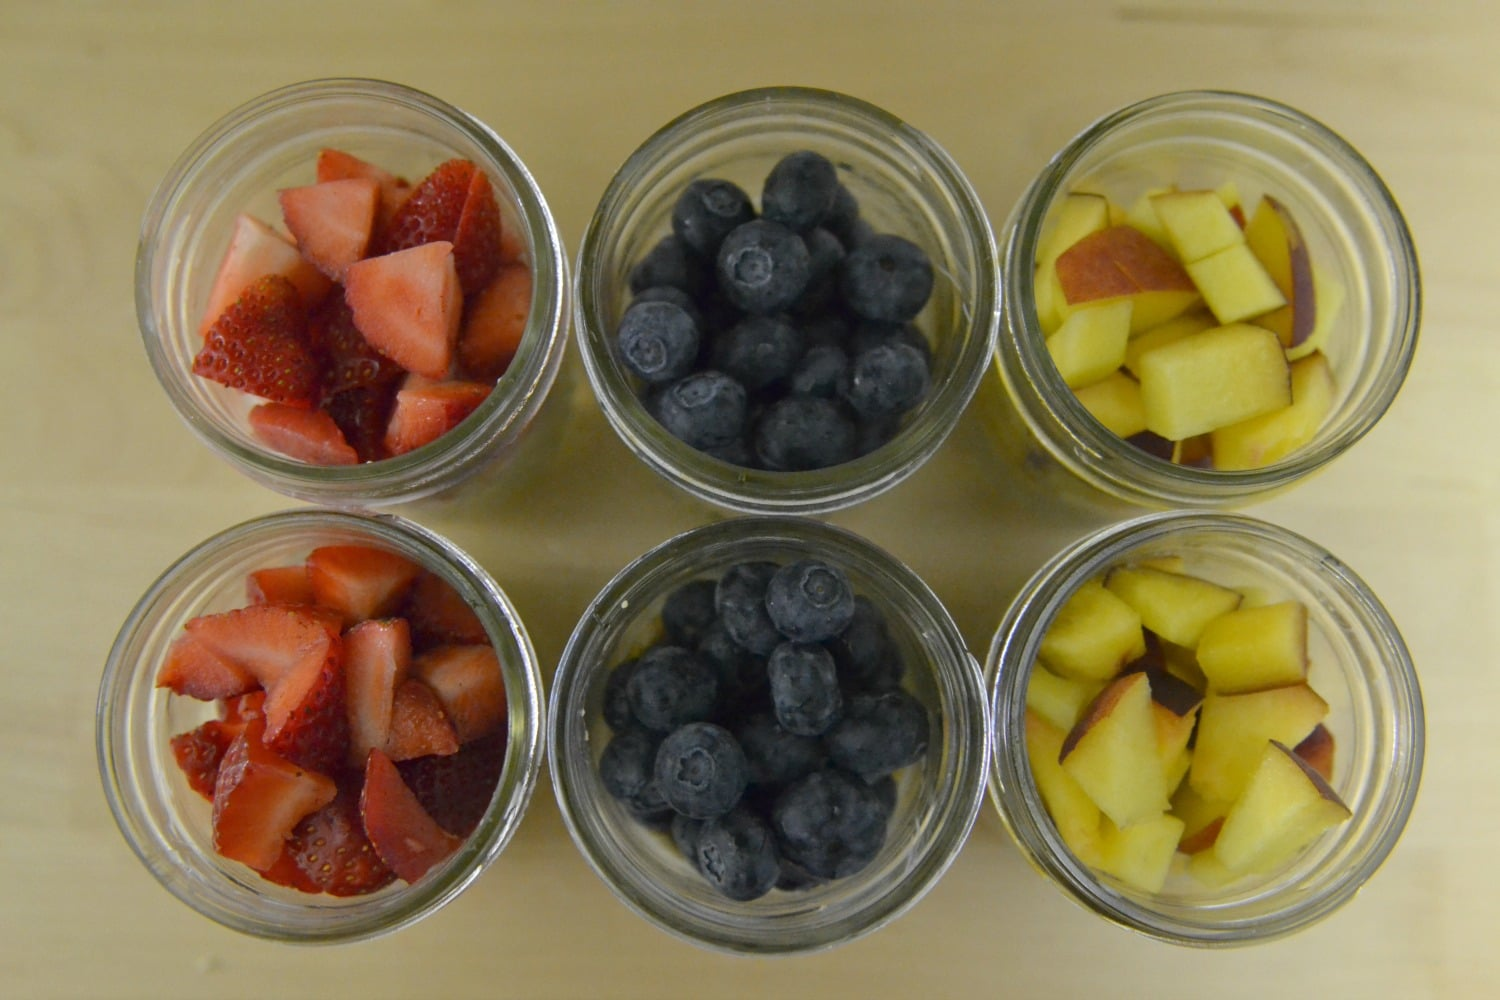 Top each jar with desired fruit and cover with mason jar lid